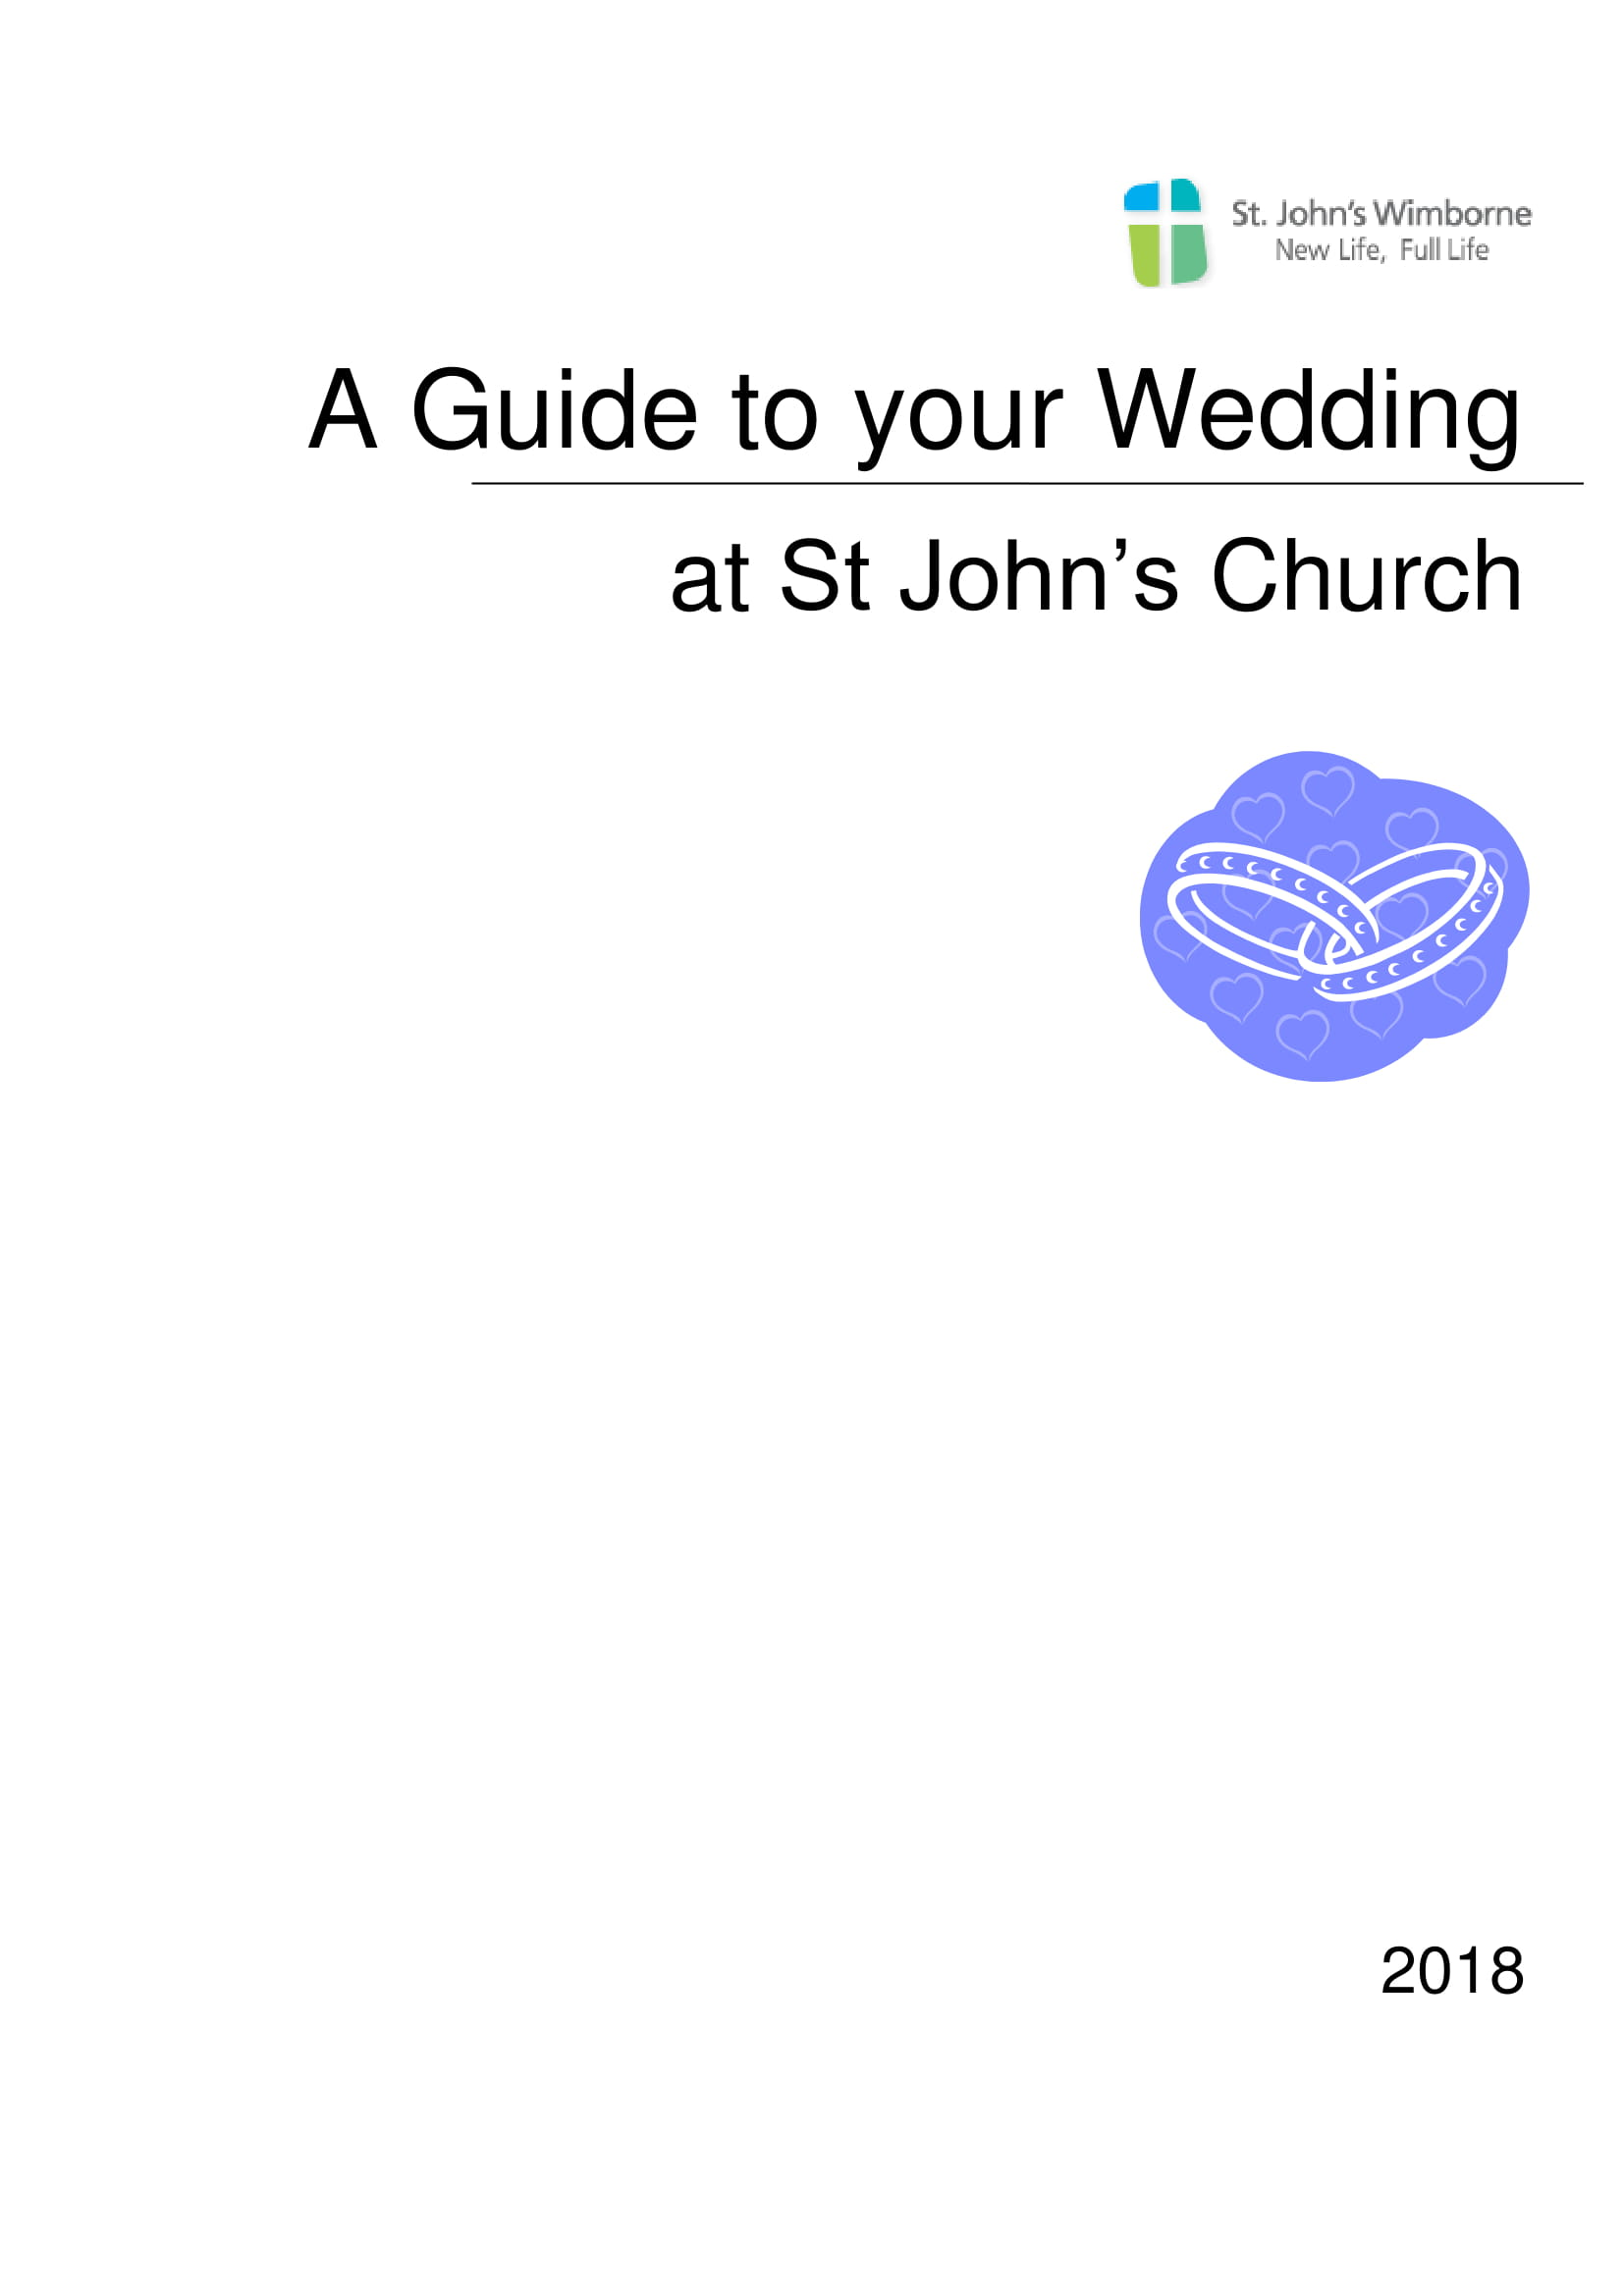 A Guide to Your Wedding pdf icon